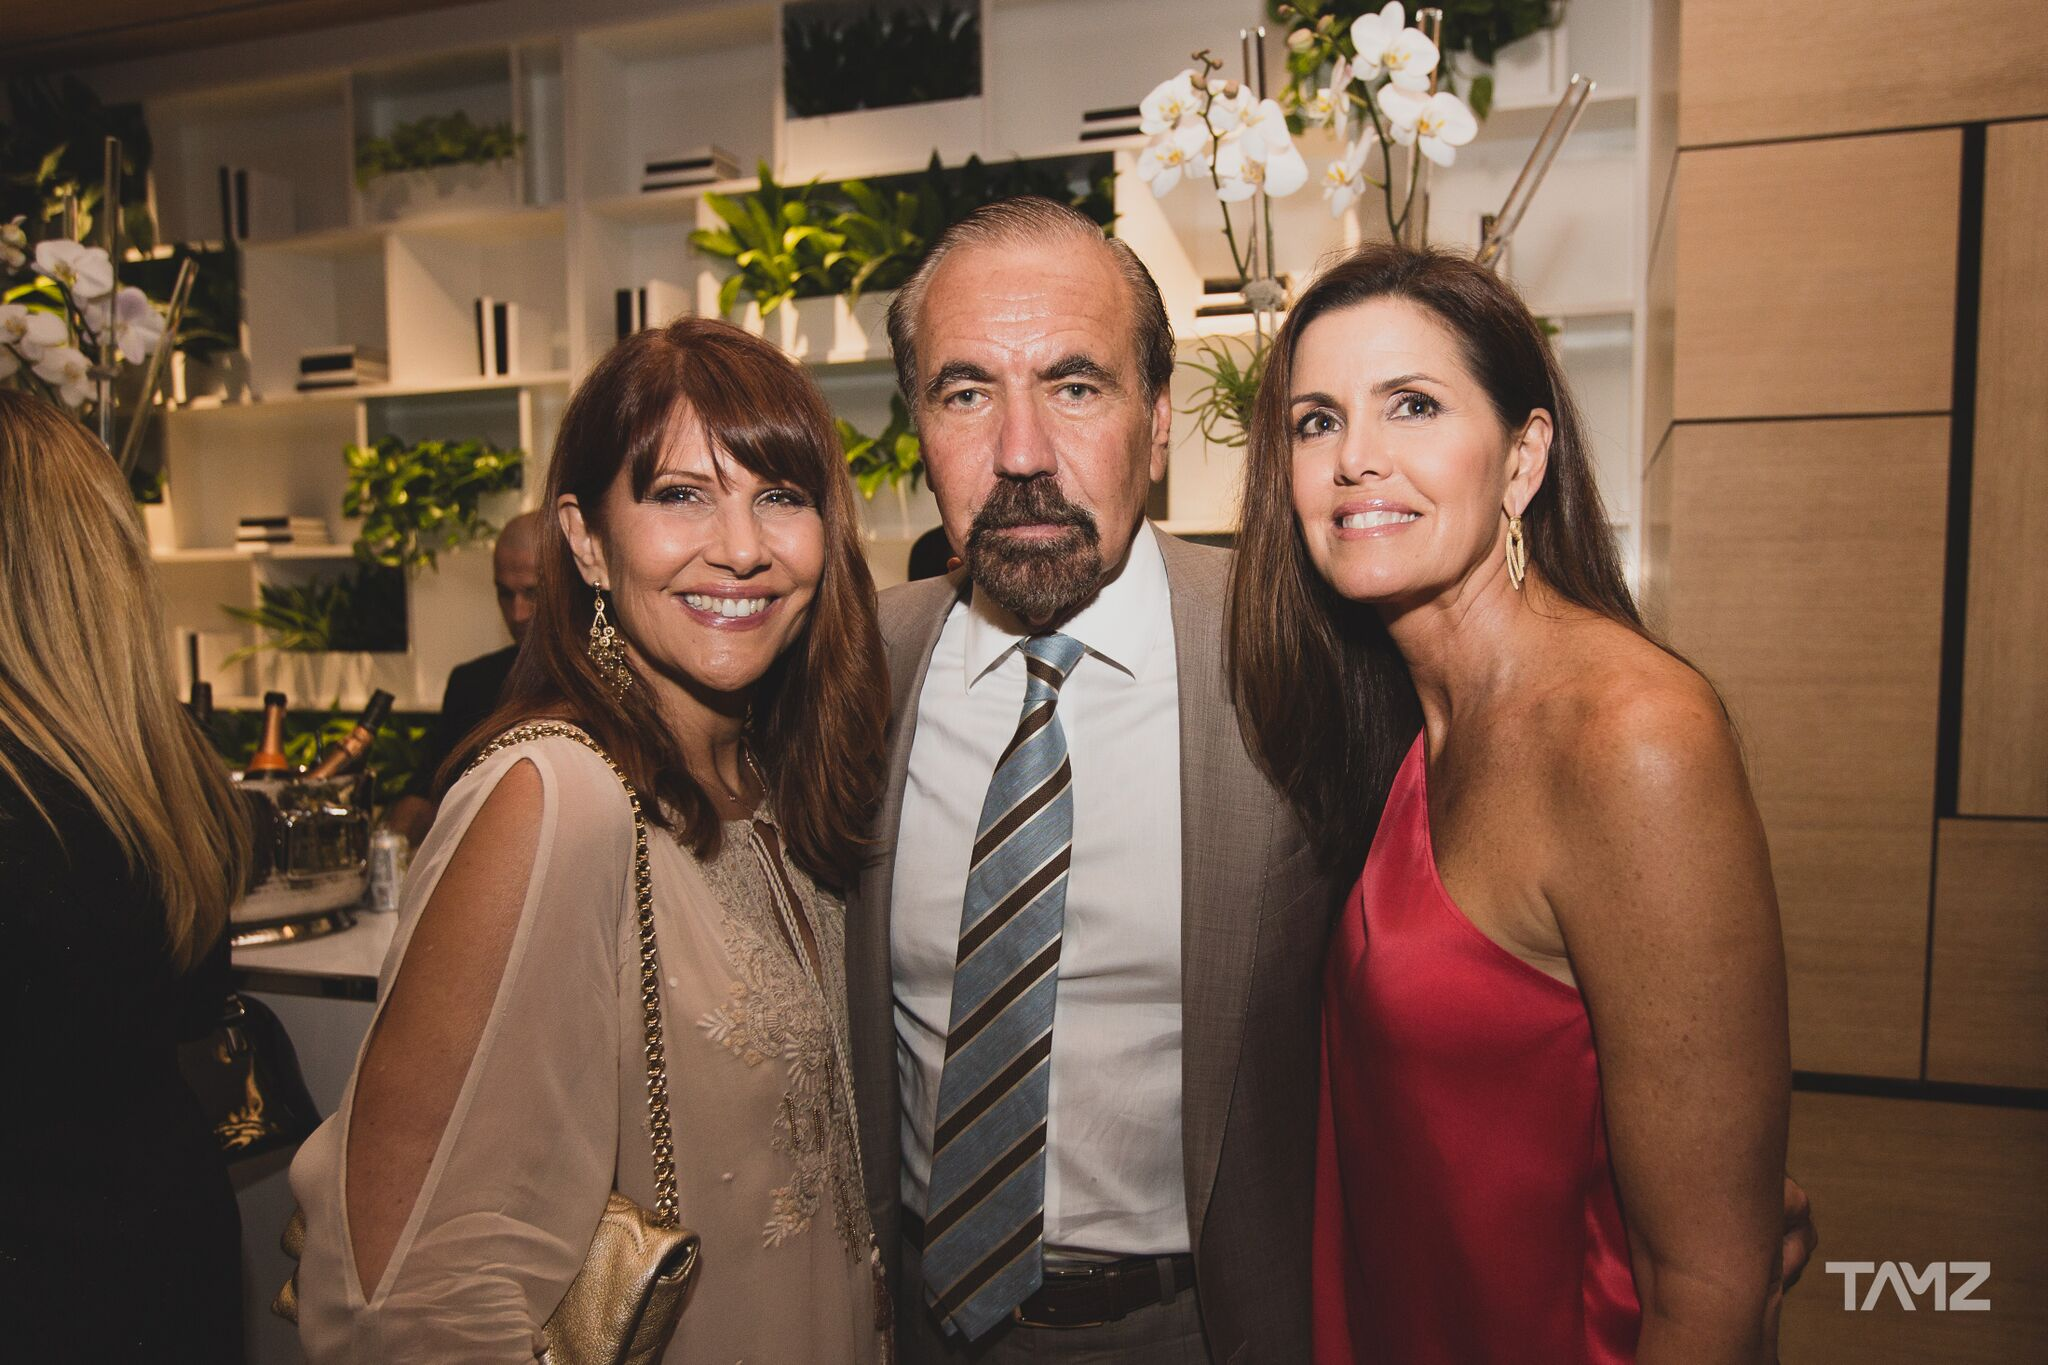 The Related Group Celebrates the Grand Opening of Brickell Heights in Style